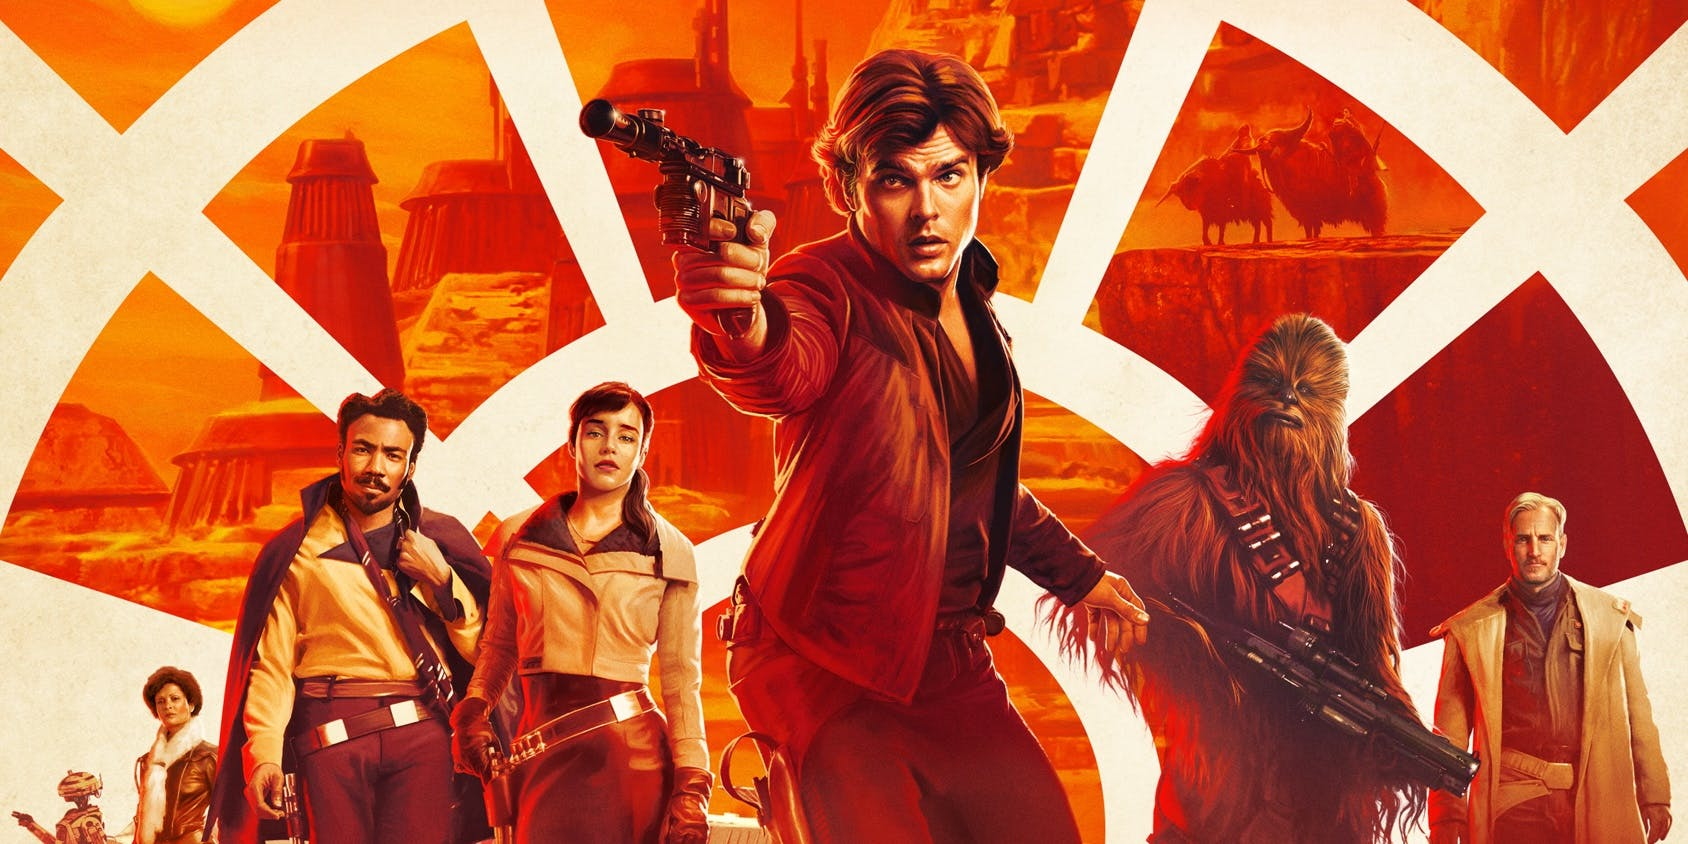 Solo-Star-Wars-Story-Poster-Cropped.jpg